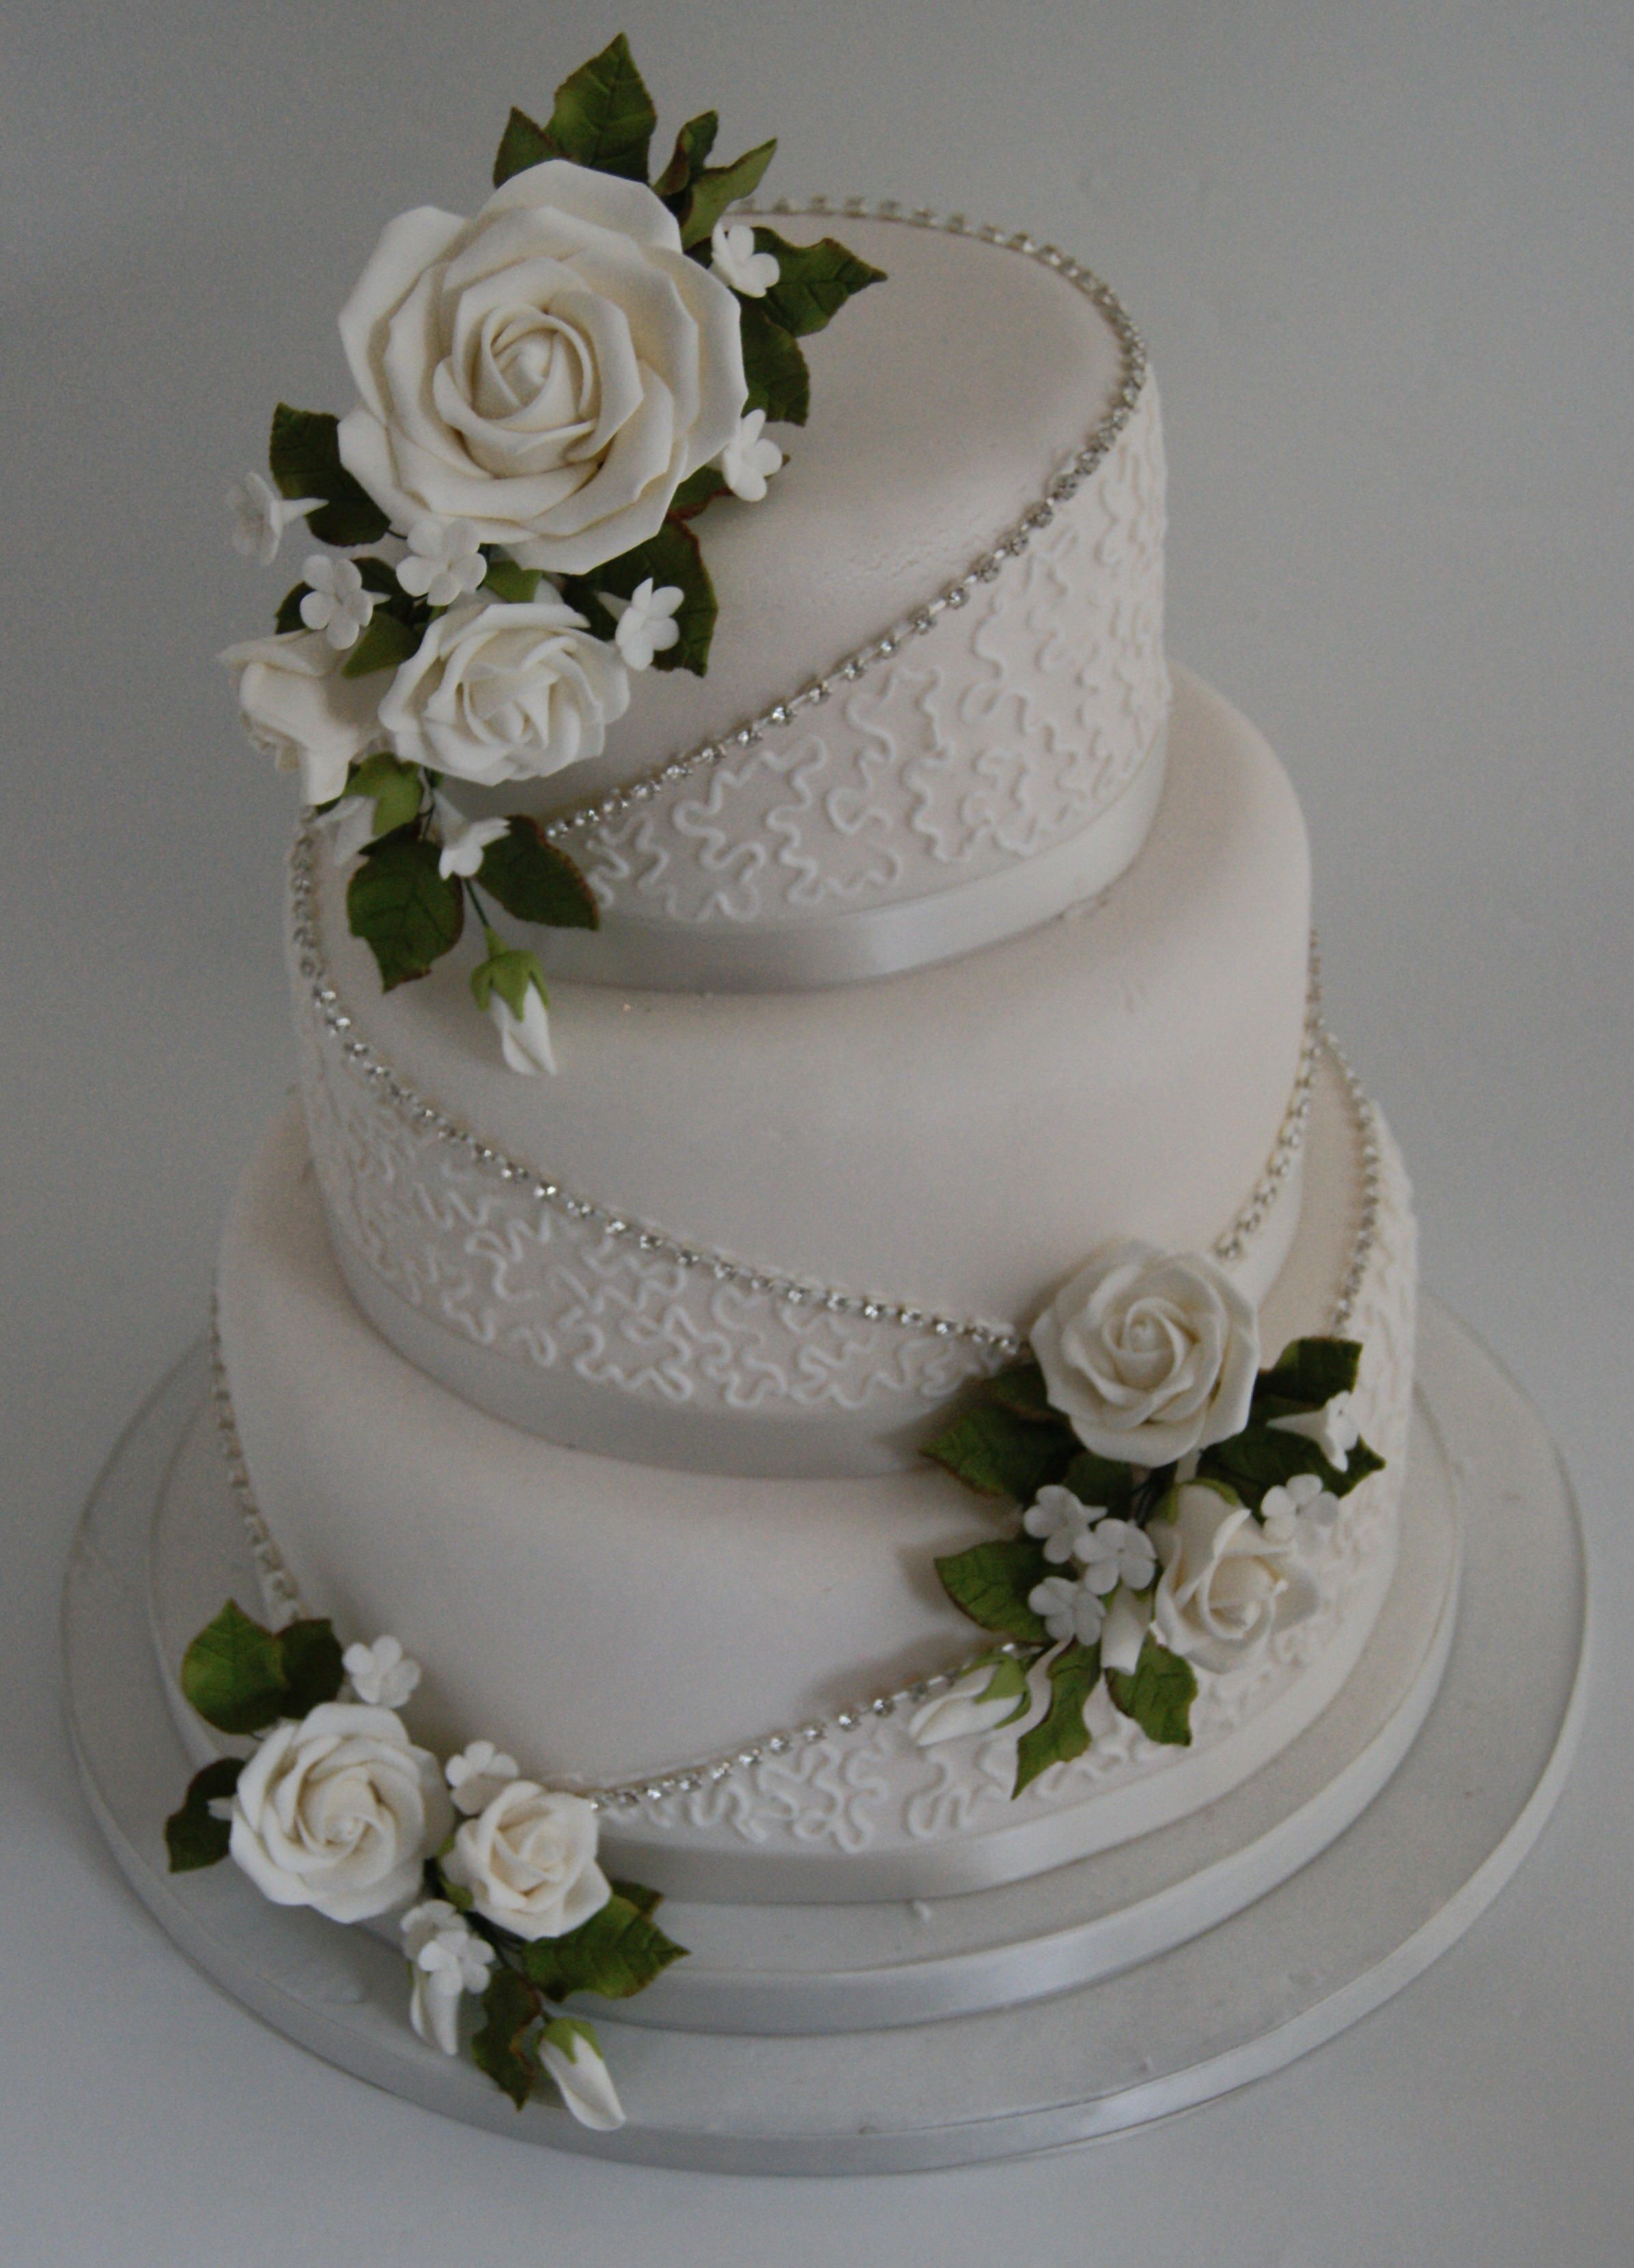 Found My Grandmas 60th Wedding Anniversary Cake But Will Have Red Rosesher